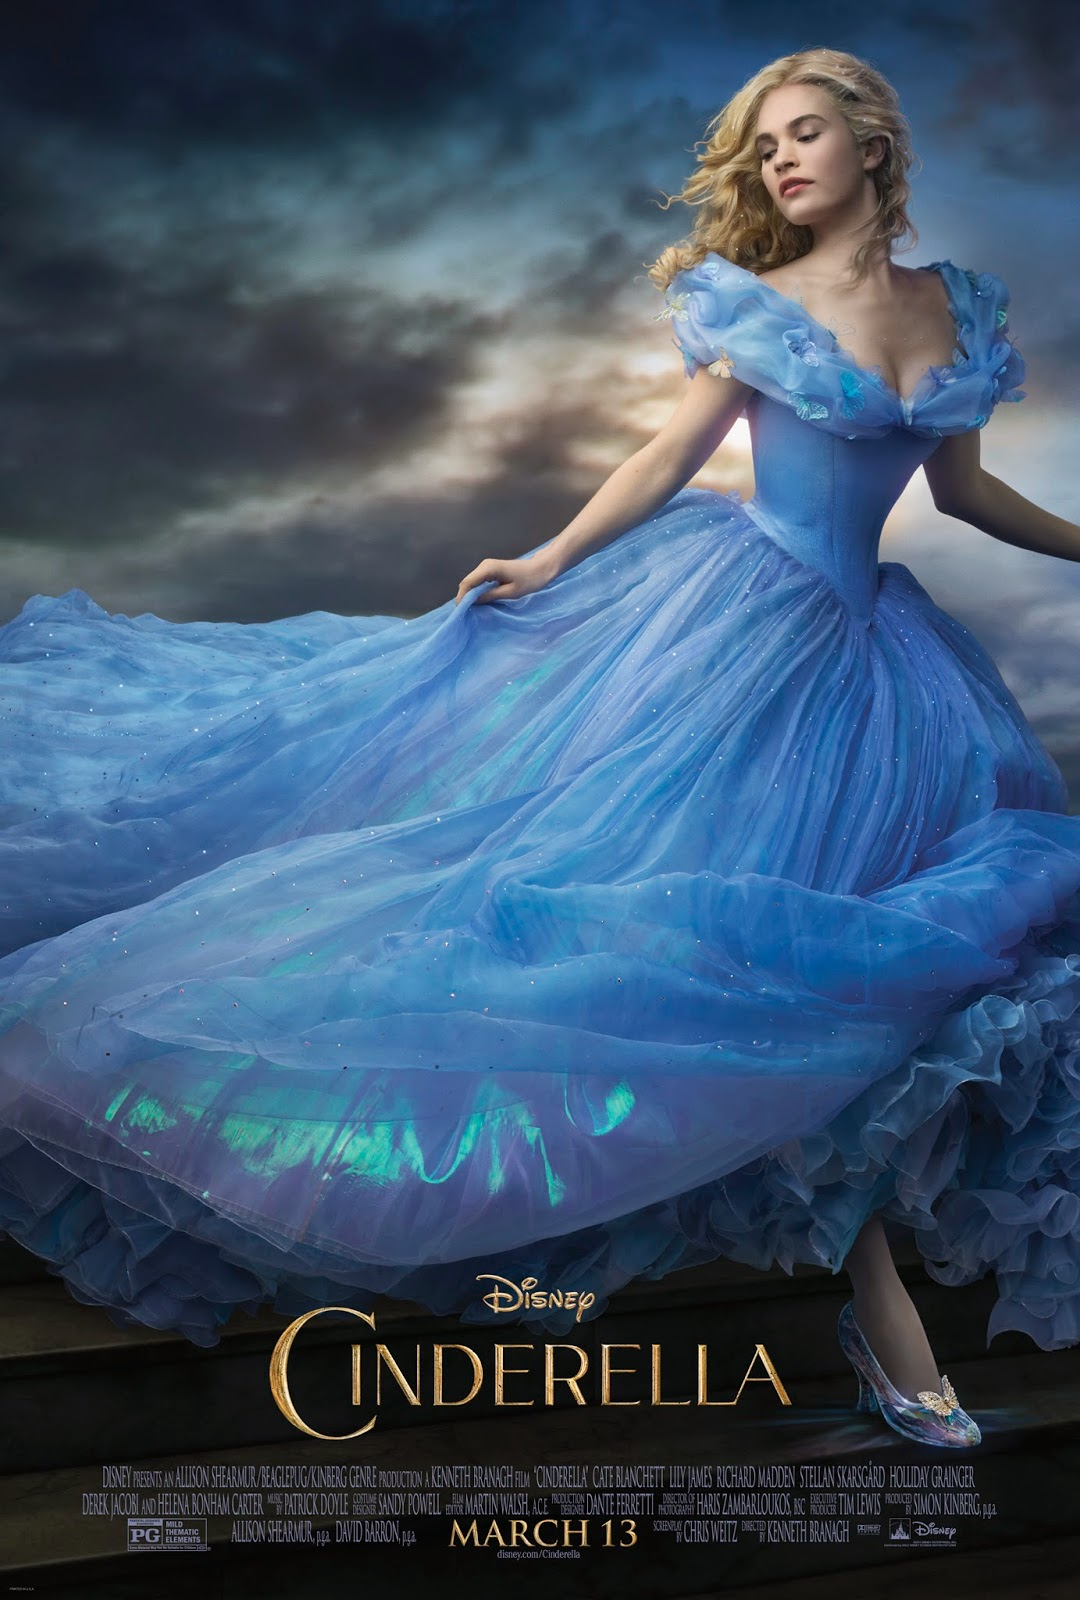 Disney's Cinderella movie poster